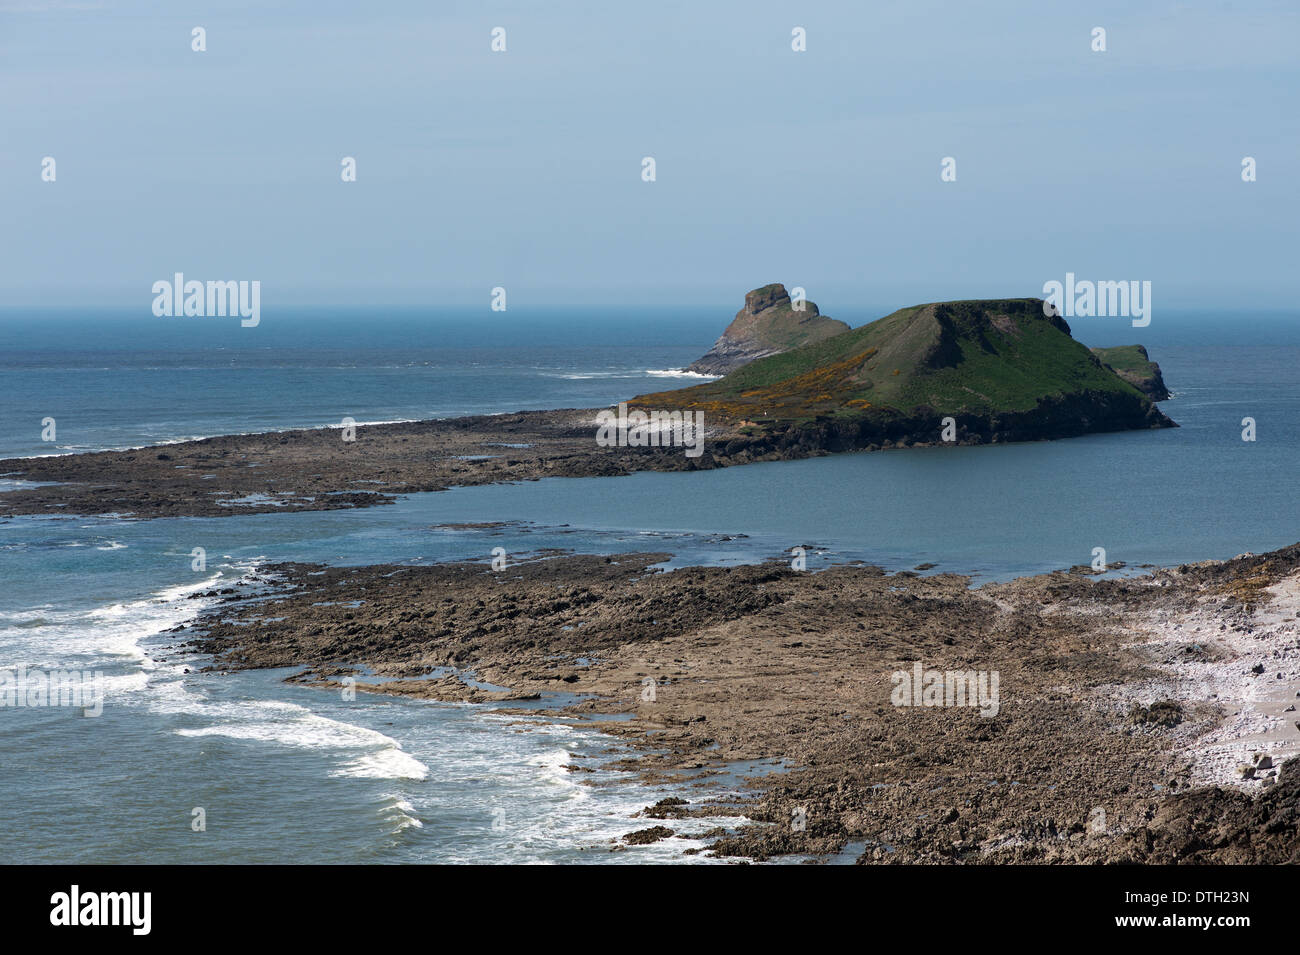 at half tide the water rushes over the causeway between the Worms head and the shore creating an island - Stock Image